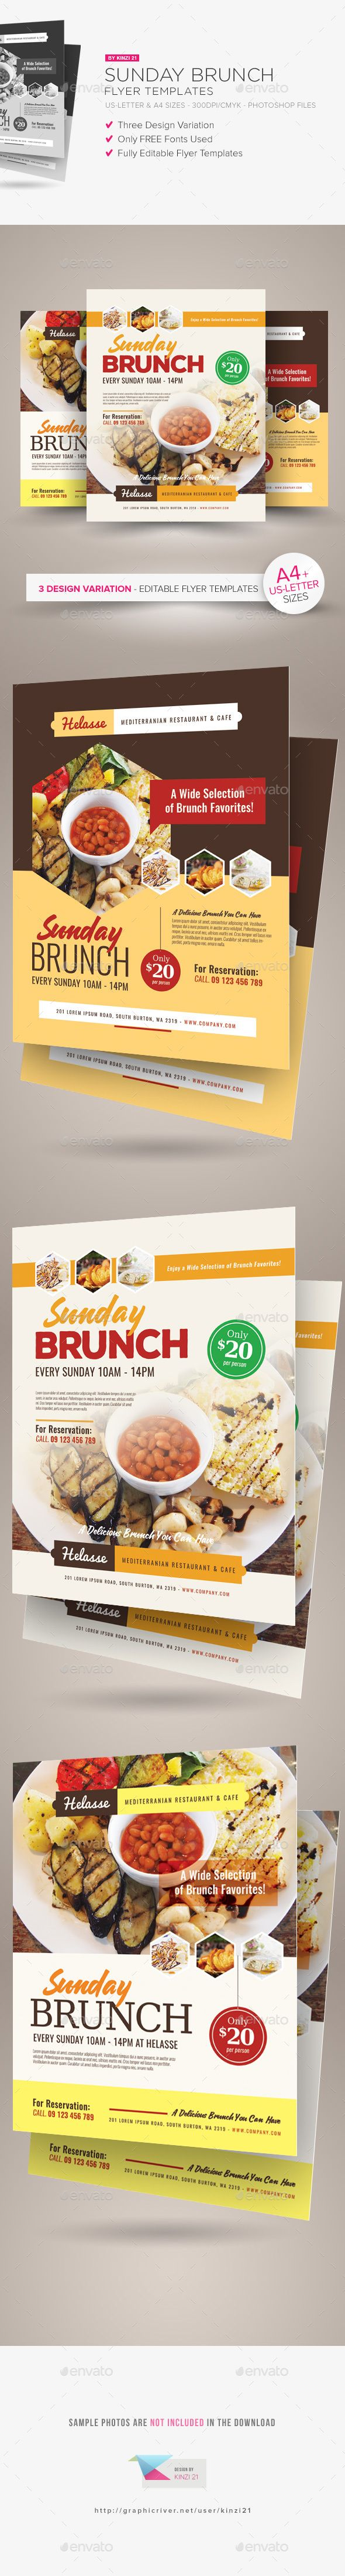 Sunday Brunch Flyer Templates — Photoshop PSD #flyer #poster • Available here → https://graphicriver.net/item/sunday-brunch-flyer-templates/15800708?ref=pxcr